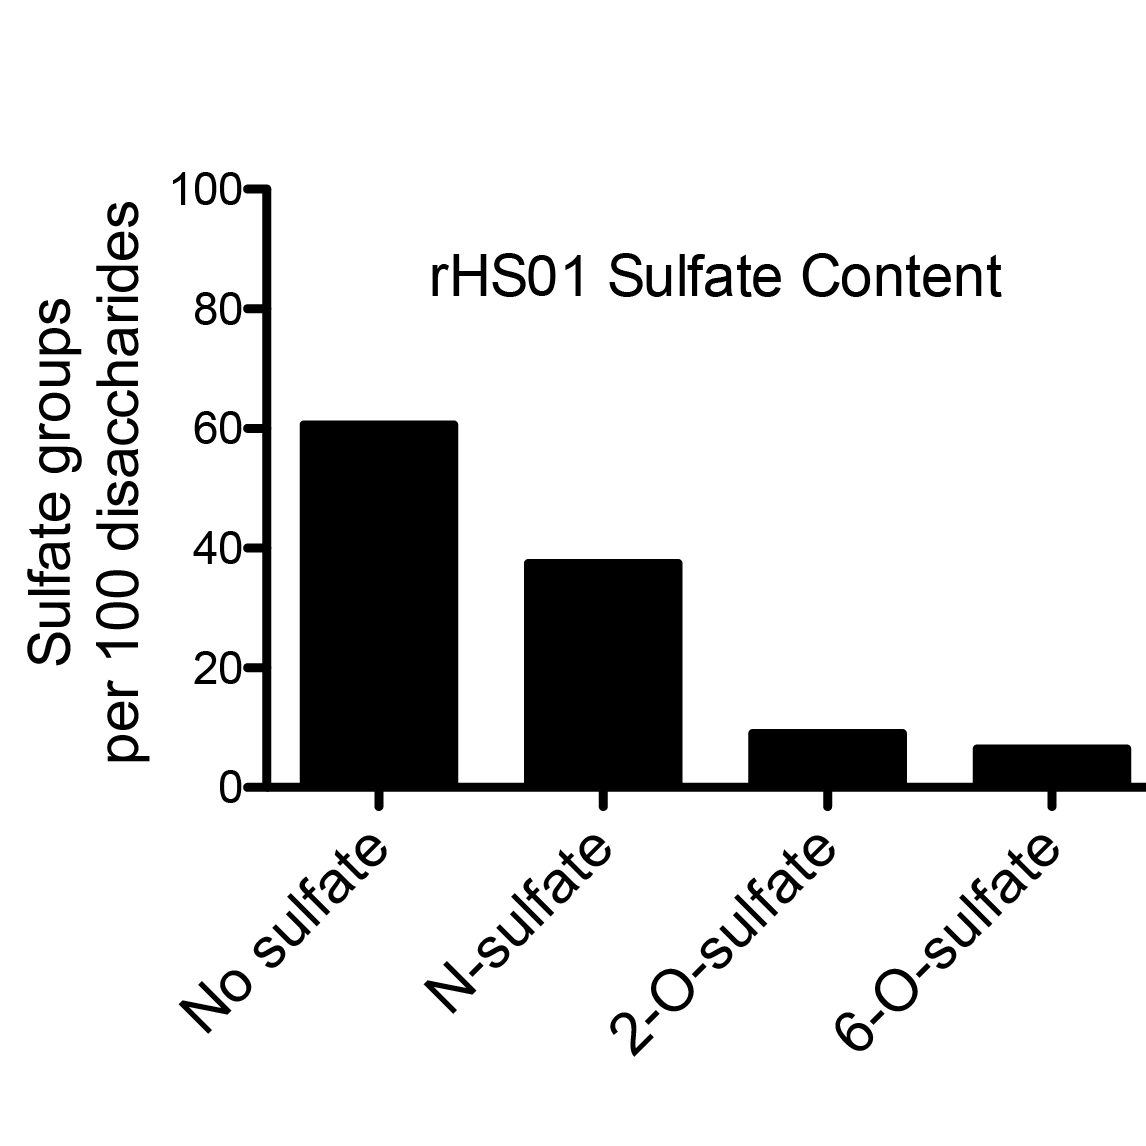 rHS01 sulfate content